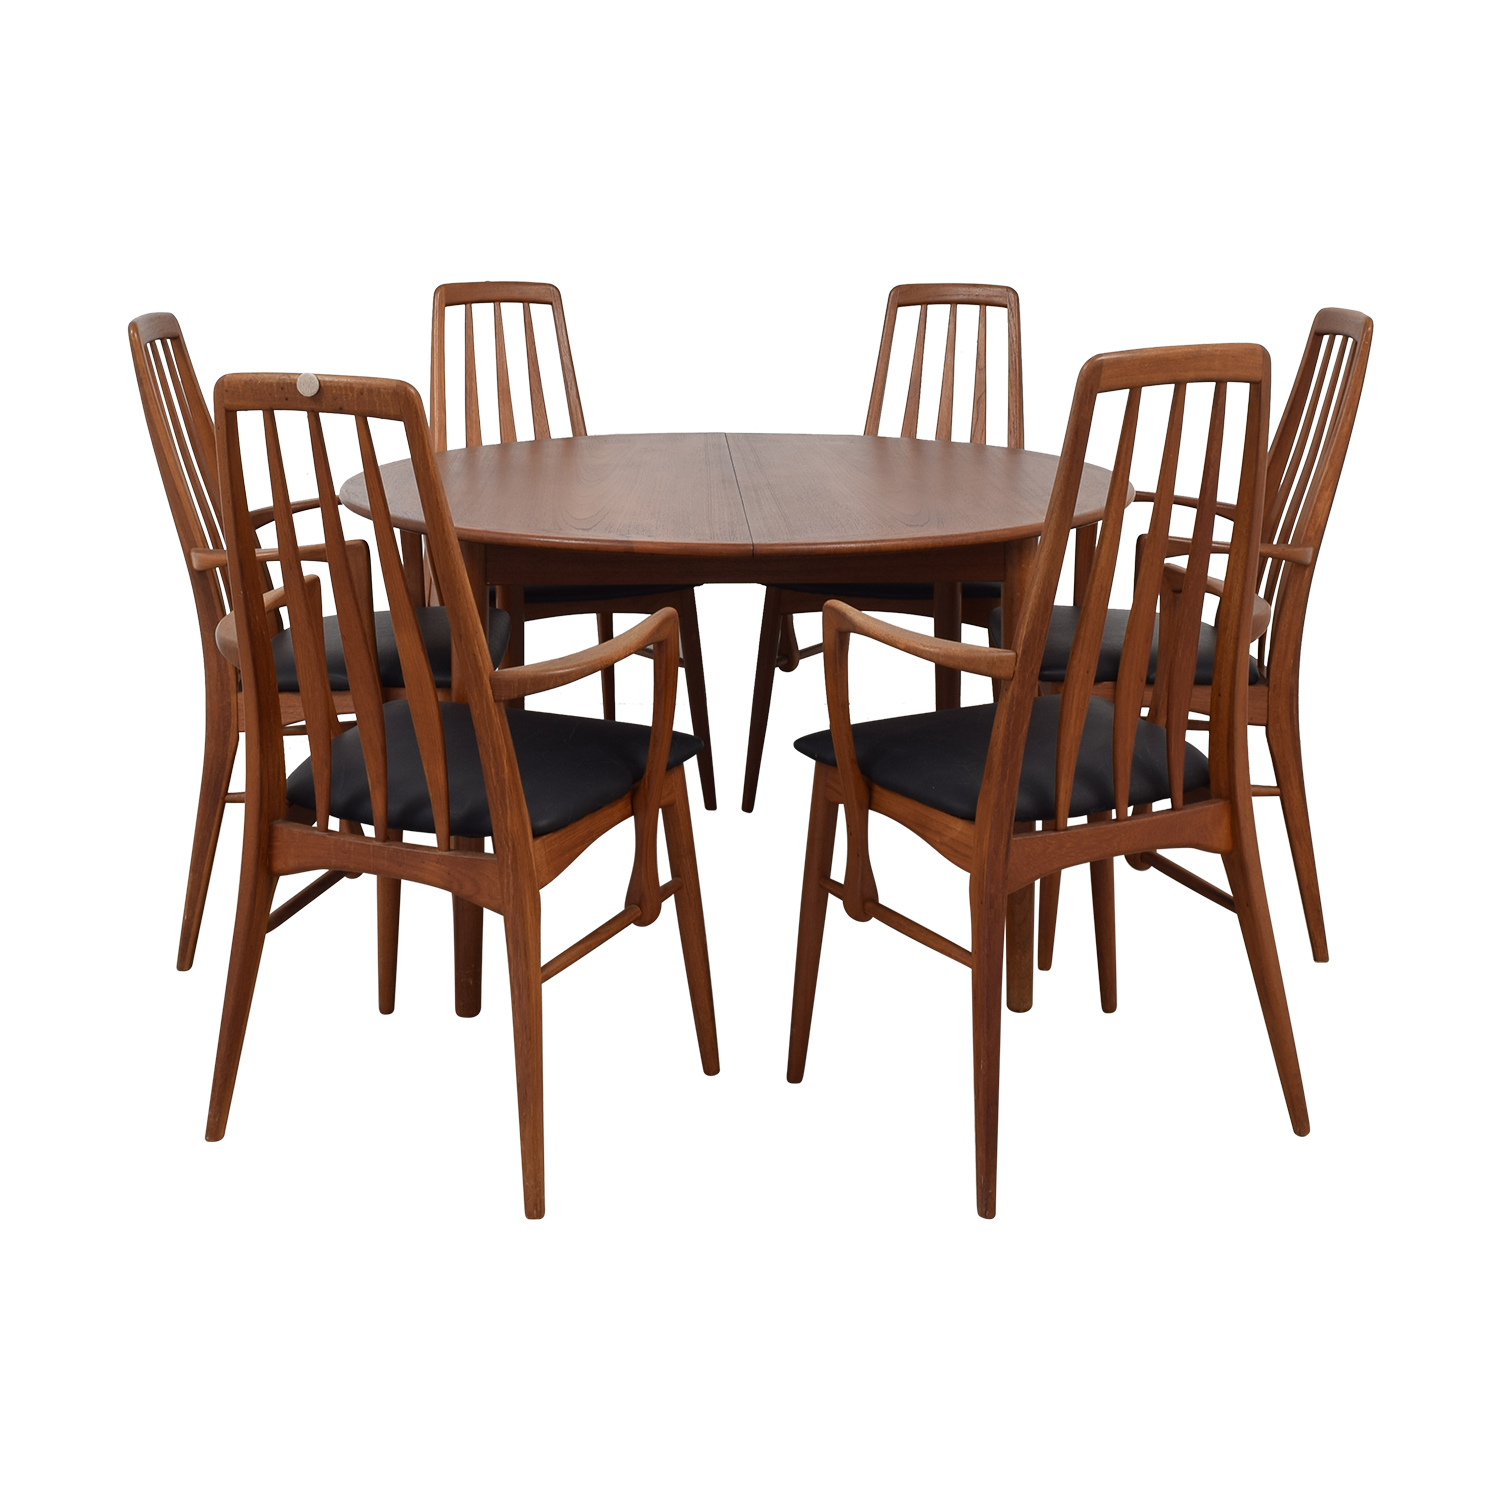 Danish Mid Century Extendable Teak Dining Set sale